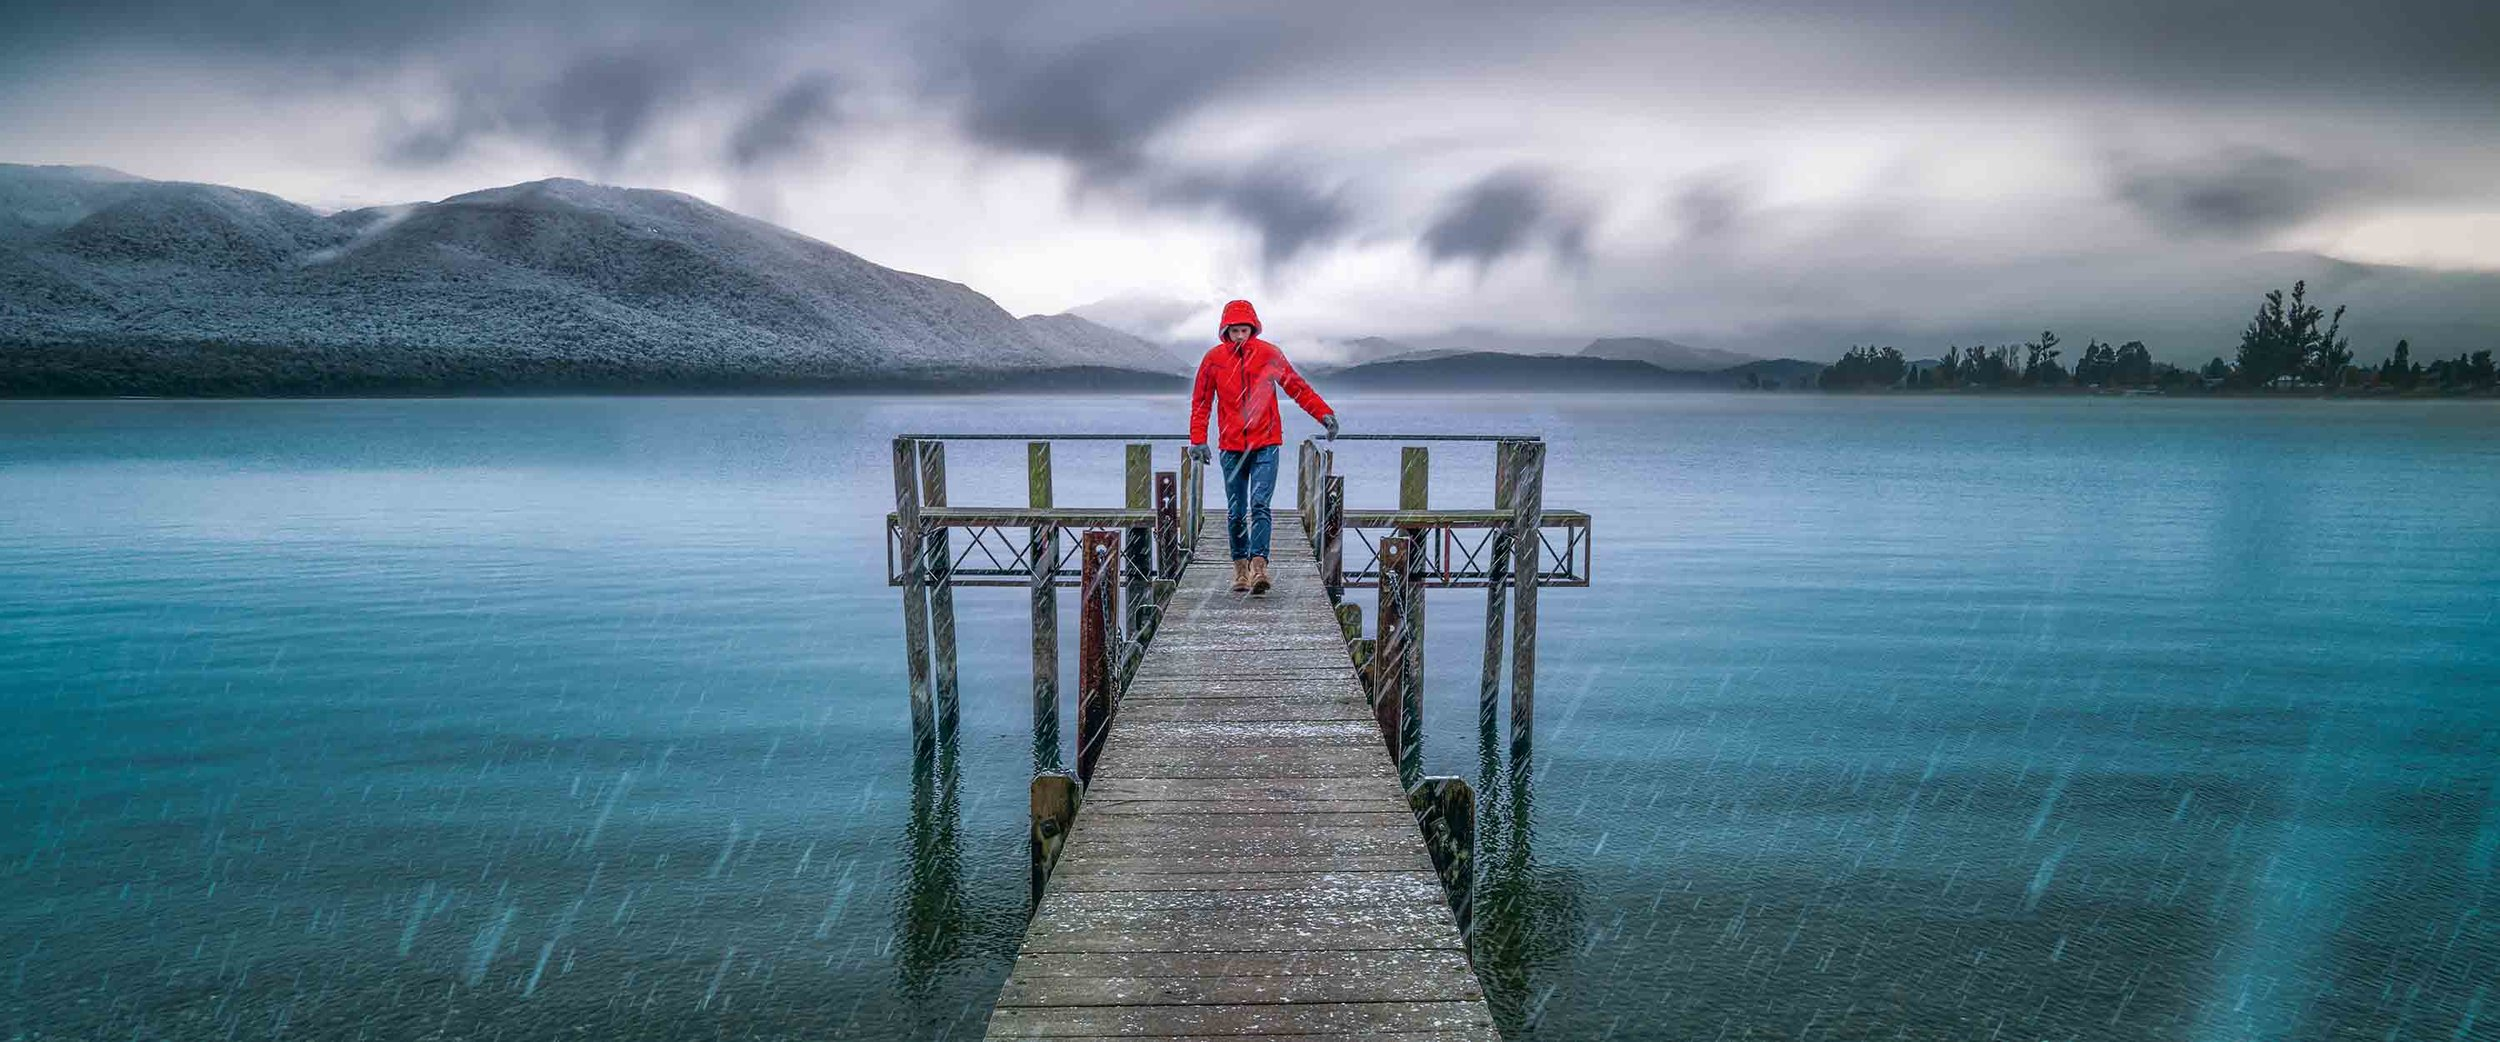 Te Anau, New Zealand,   Yes this is a selfie. This photo i love, it was May in NZ and this morning brought the first snowfall of the winter. I was travelling from Milford Sound back to Queenstown and i was caught in Te Anua for a day as the roads were too hazardous. It turned out being one of the best days of the trip, i met a local photographer who was super cool, i ate some delicious food in the Te Anau restaurants while taking in these amazing views.